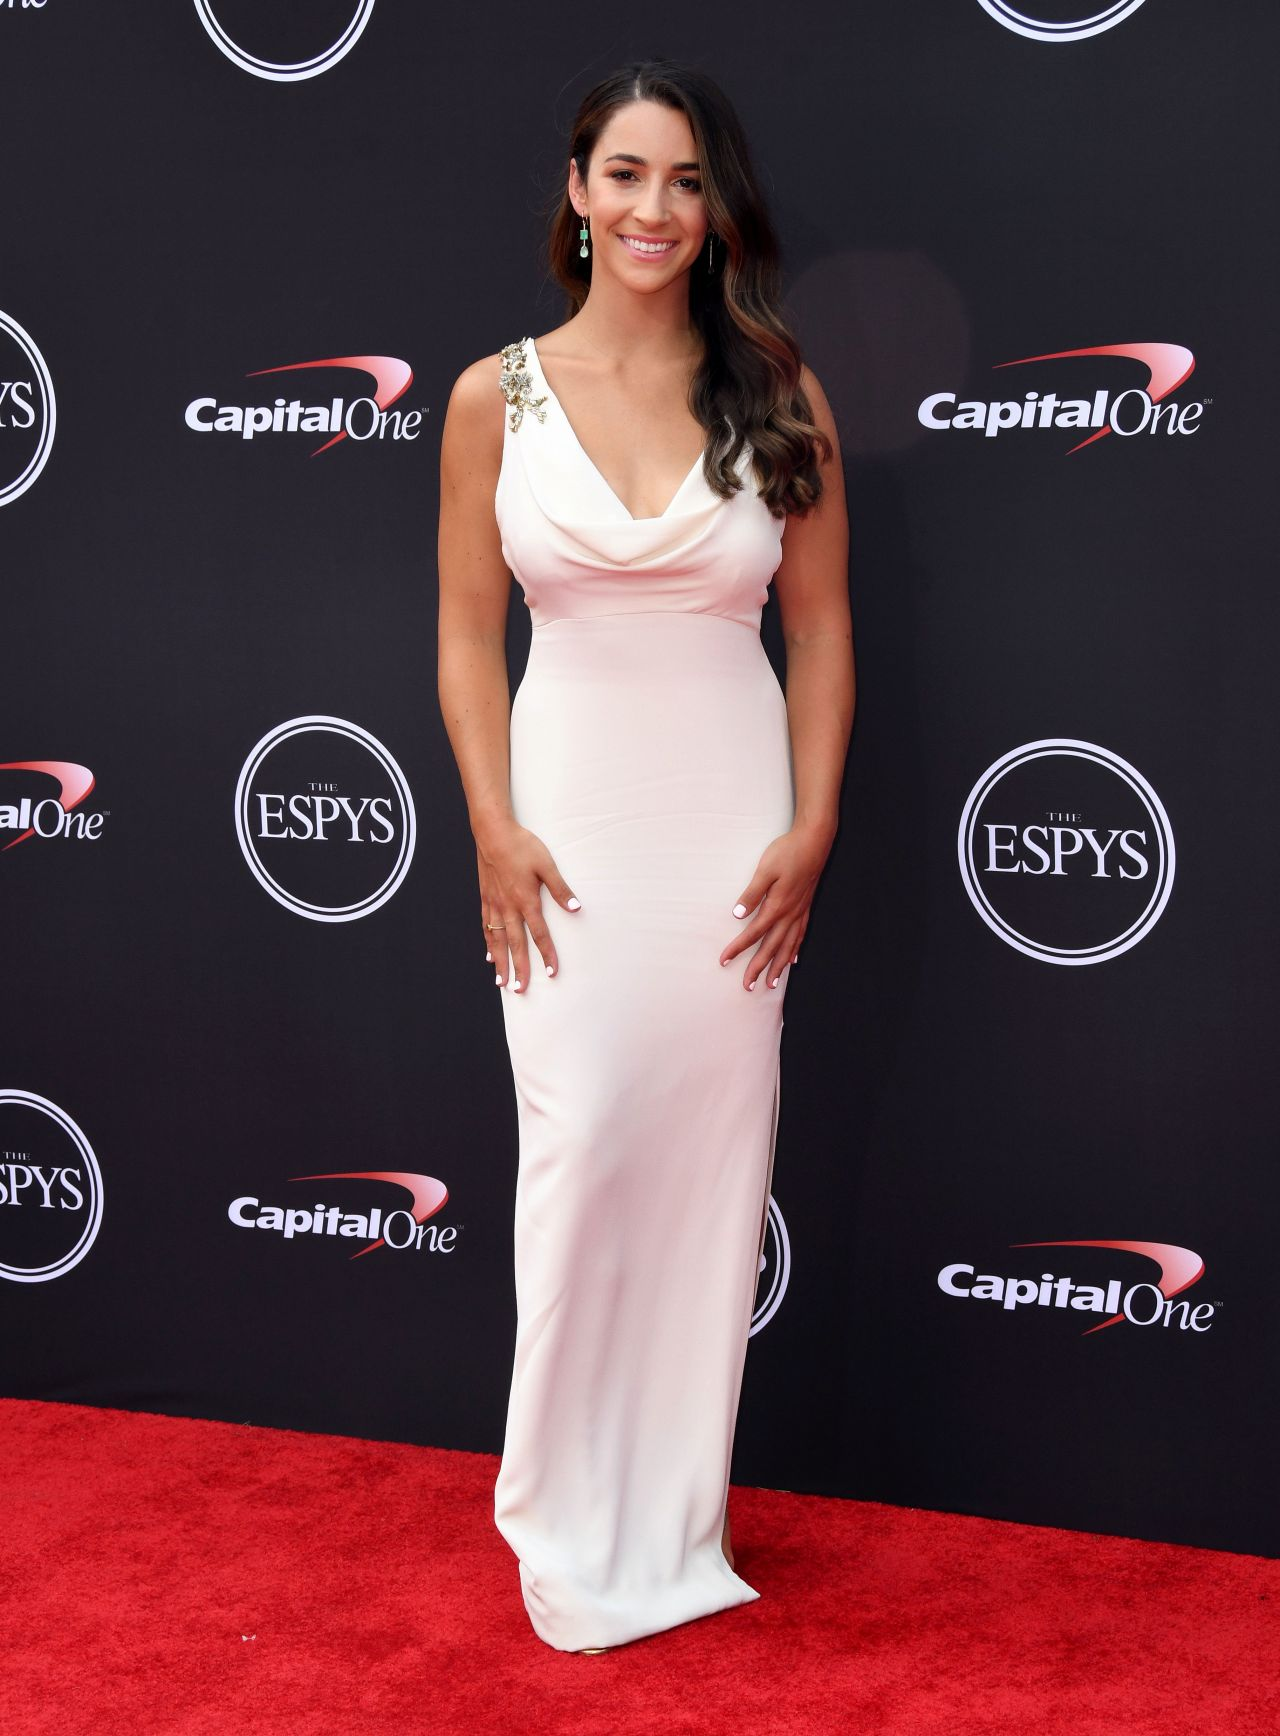 Aly Raisman Boyfriend, Age, Biography